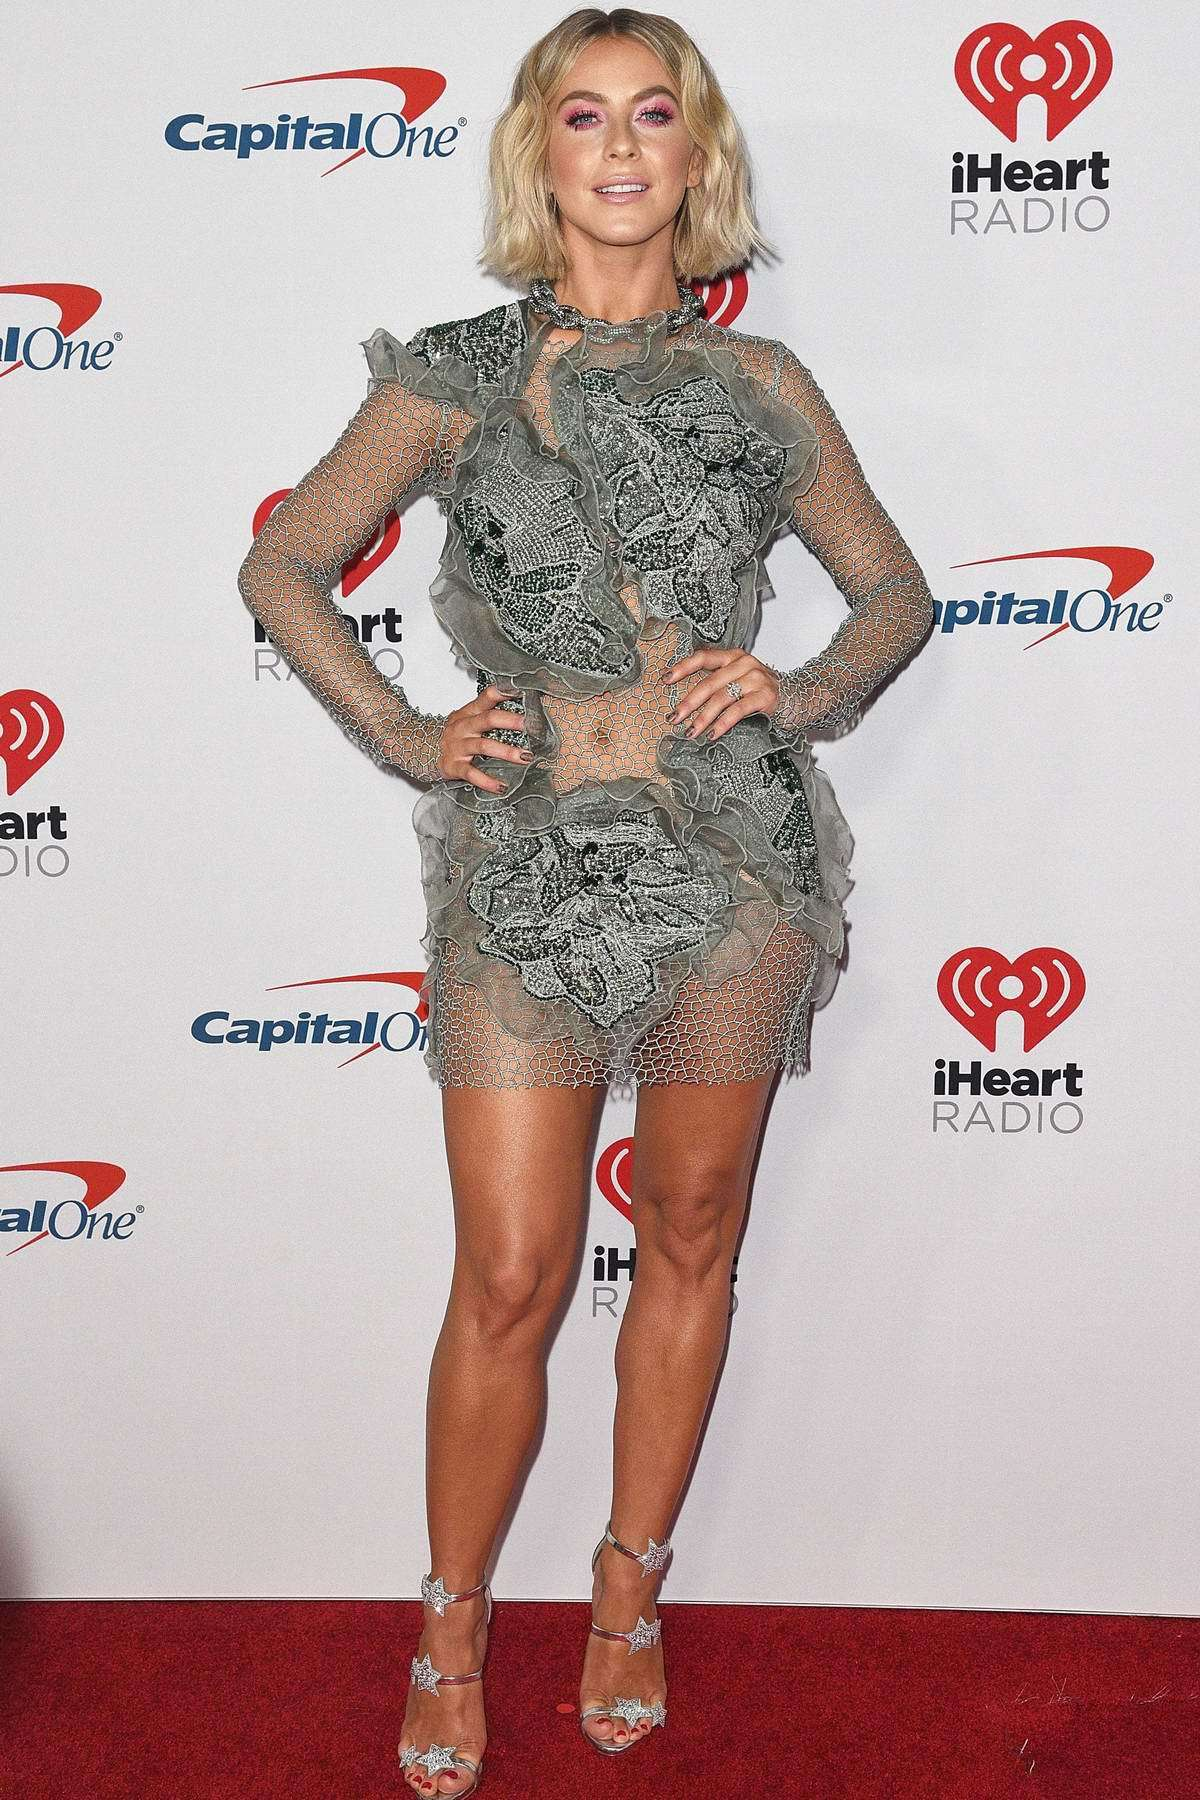 shoes Silver sandals silver julianne hough celebrity lace dress mini dress celebrity style